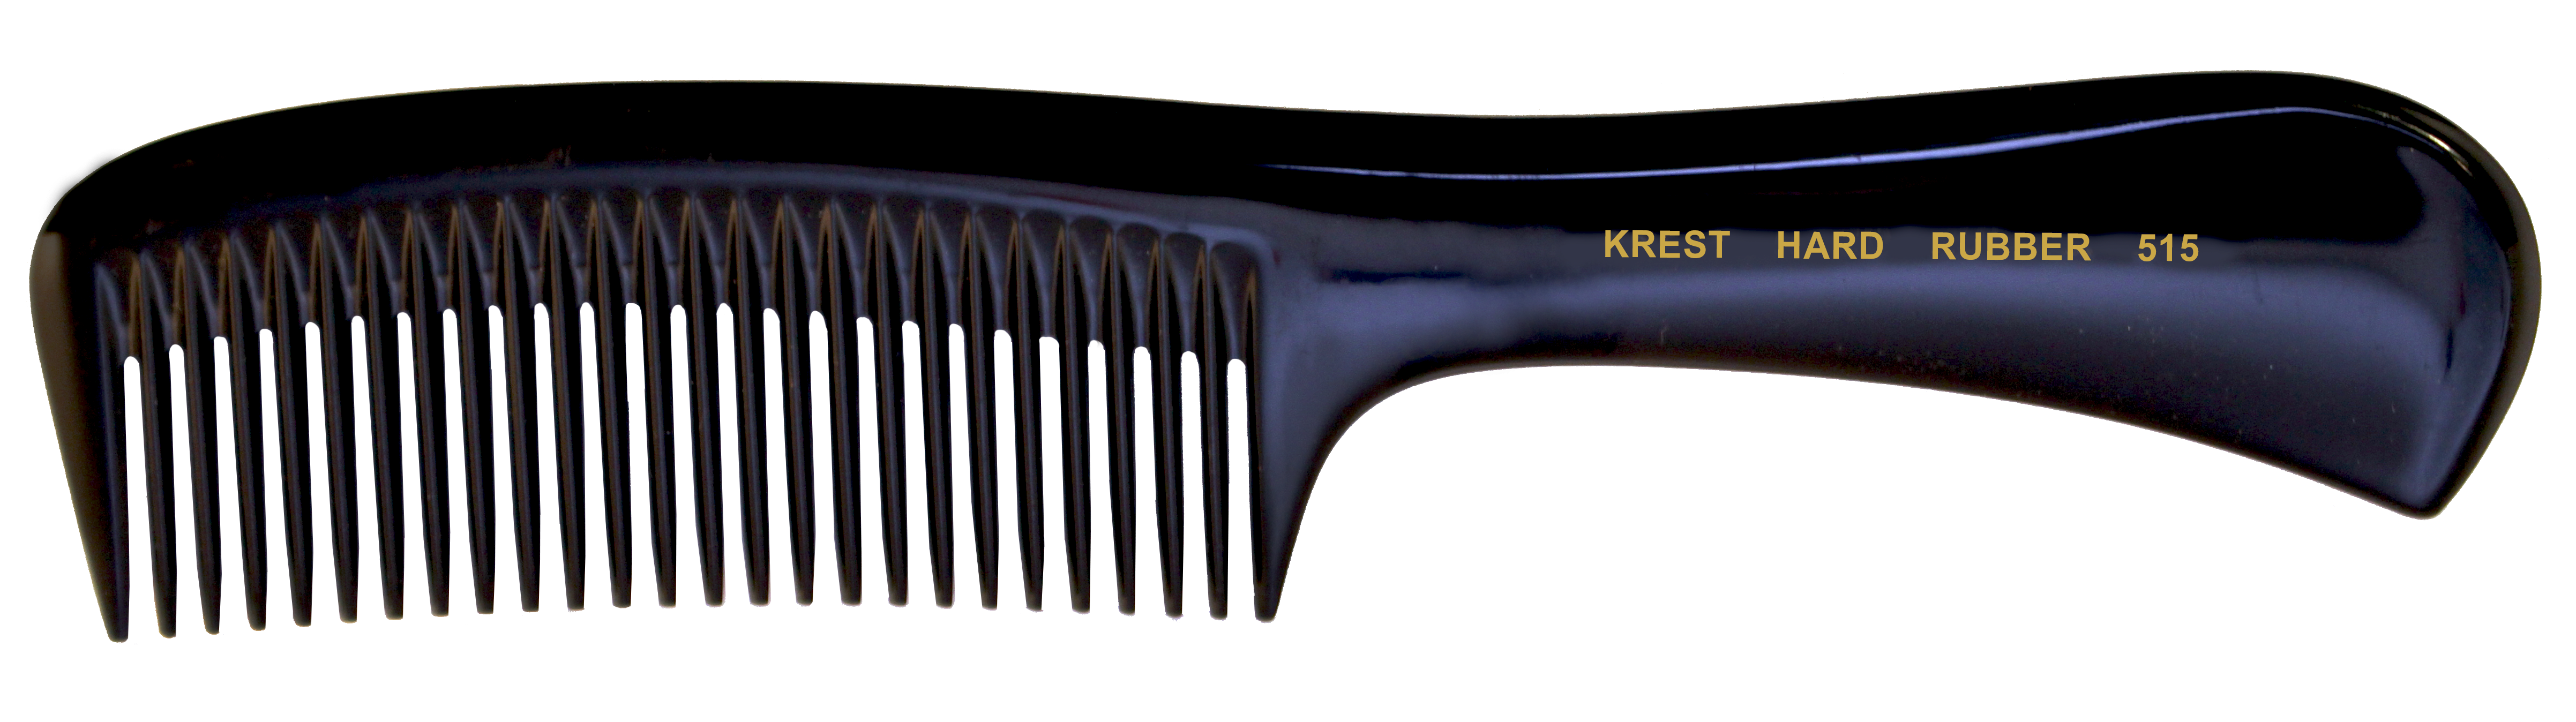 No. 515 Krest Hard Rubber Combs